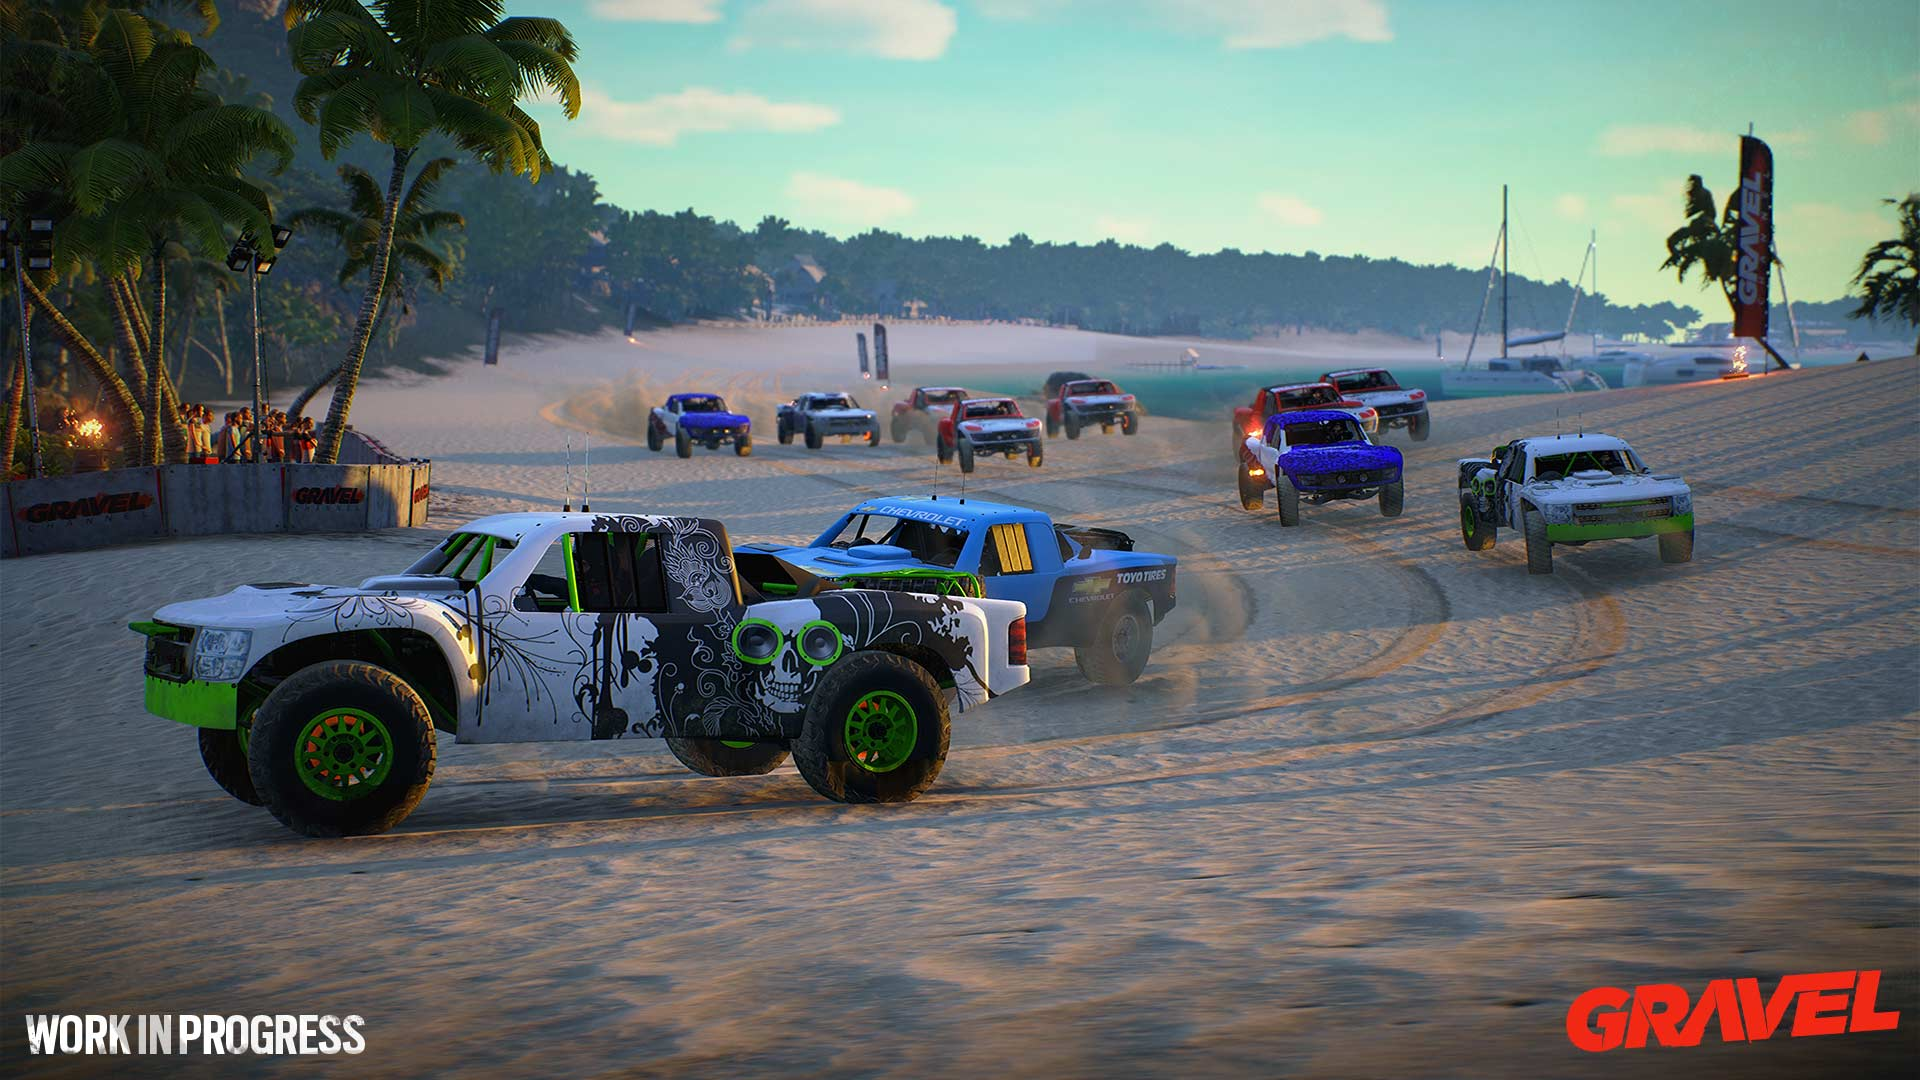 Gravel wip trophy trucks beach